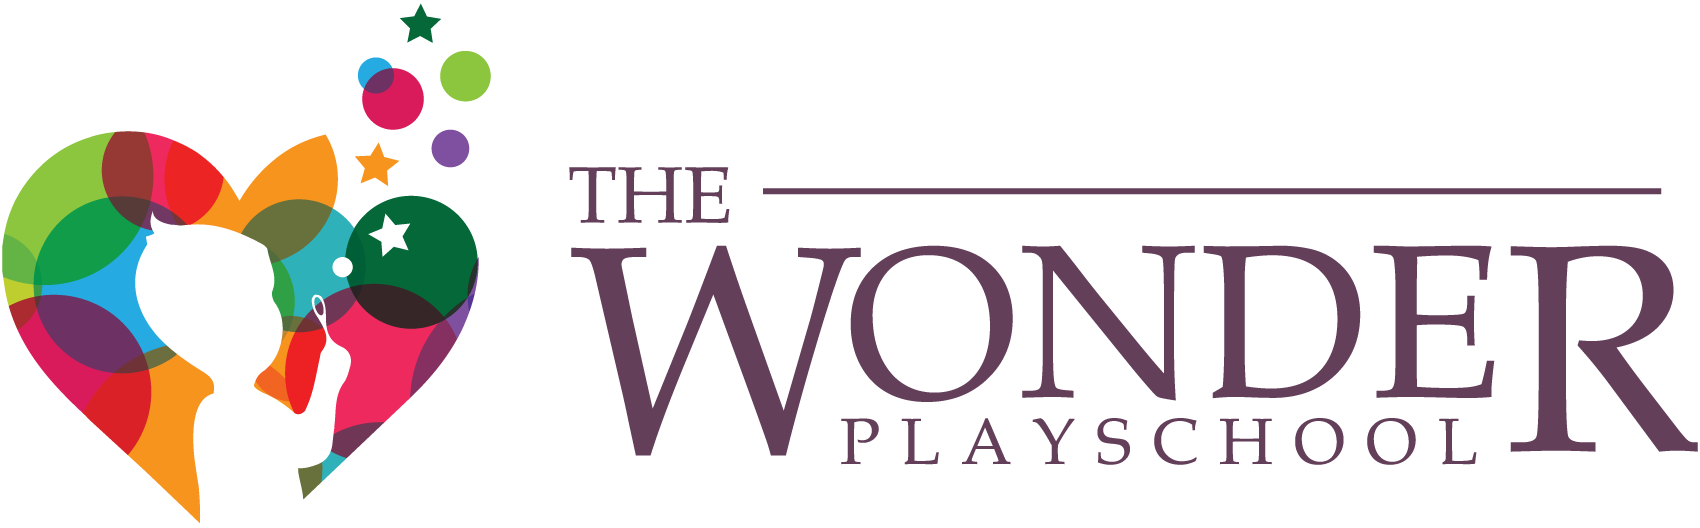 The Wonder Playschool